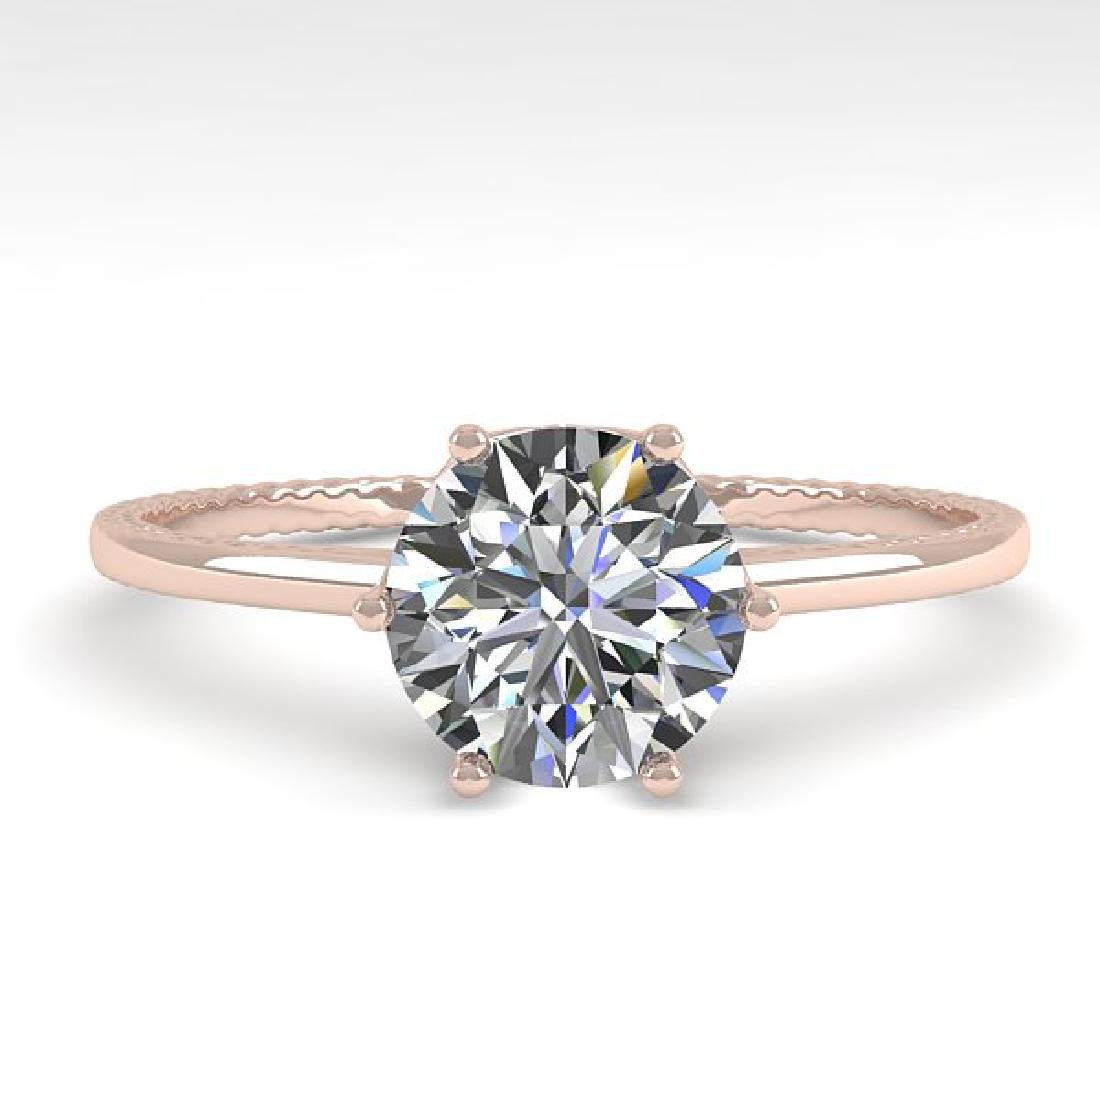 1.0 CTW VS/SI Diamond Art Deco Ring 14K Rose Gold